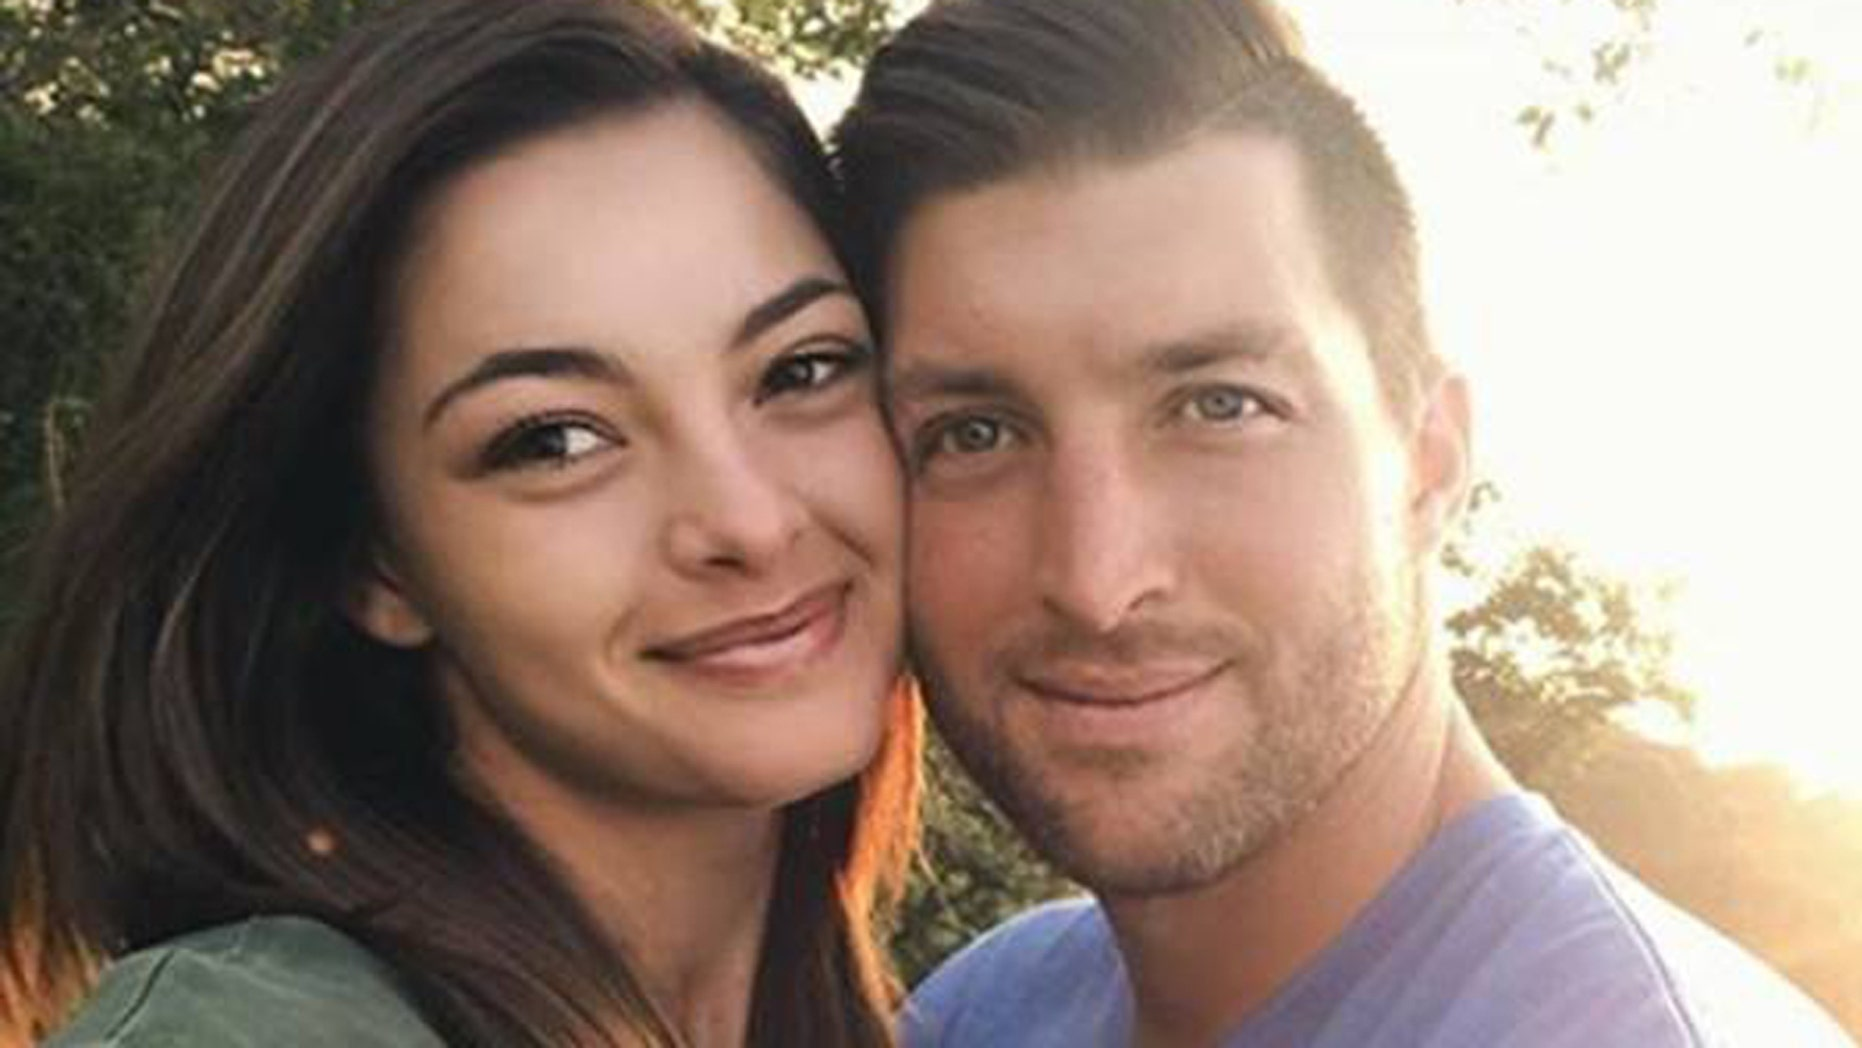 Tim tebow single or dating